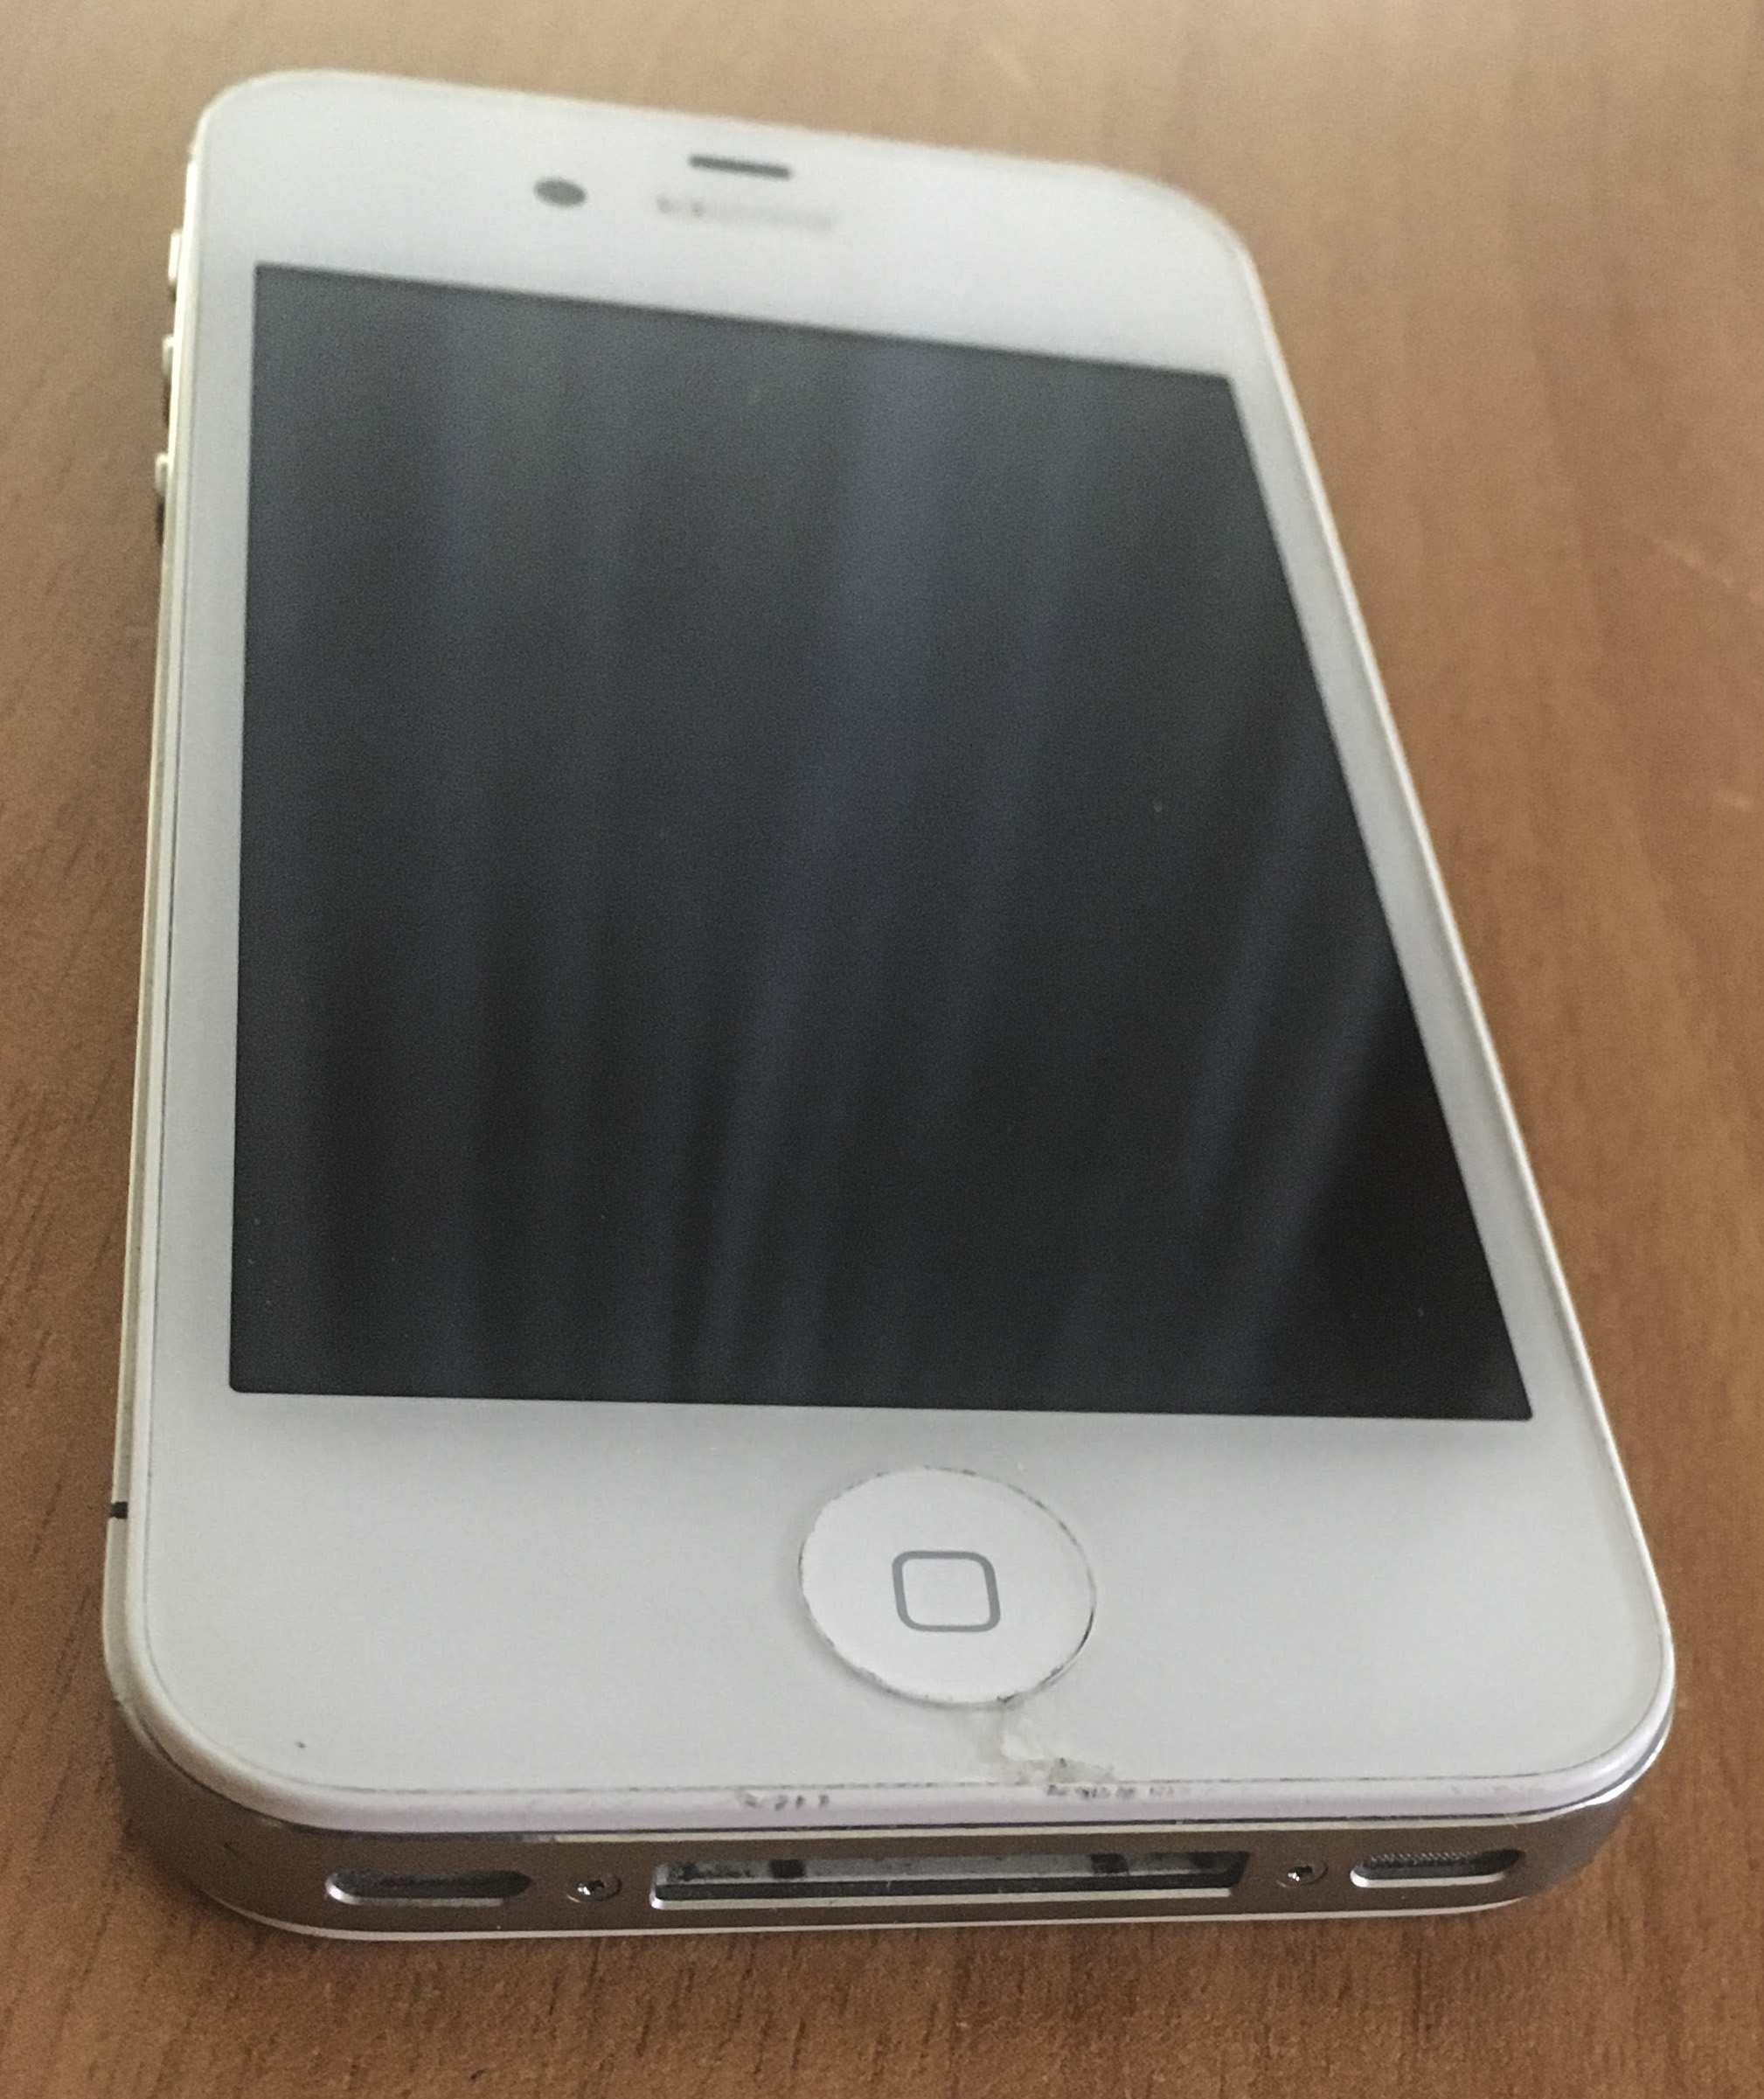 Iphone 4s 16gb Libre Venta Iphone 4s 16gb Blanco Libre Venta Segunda Mano Apple